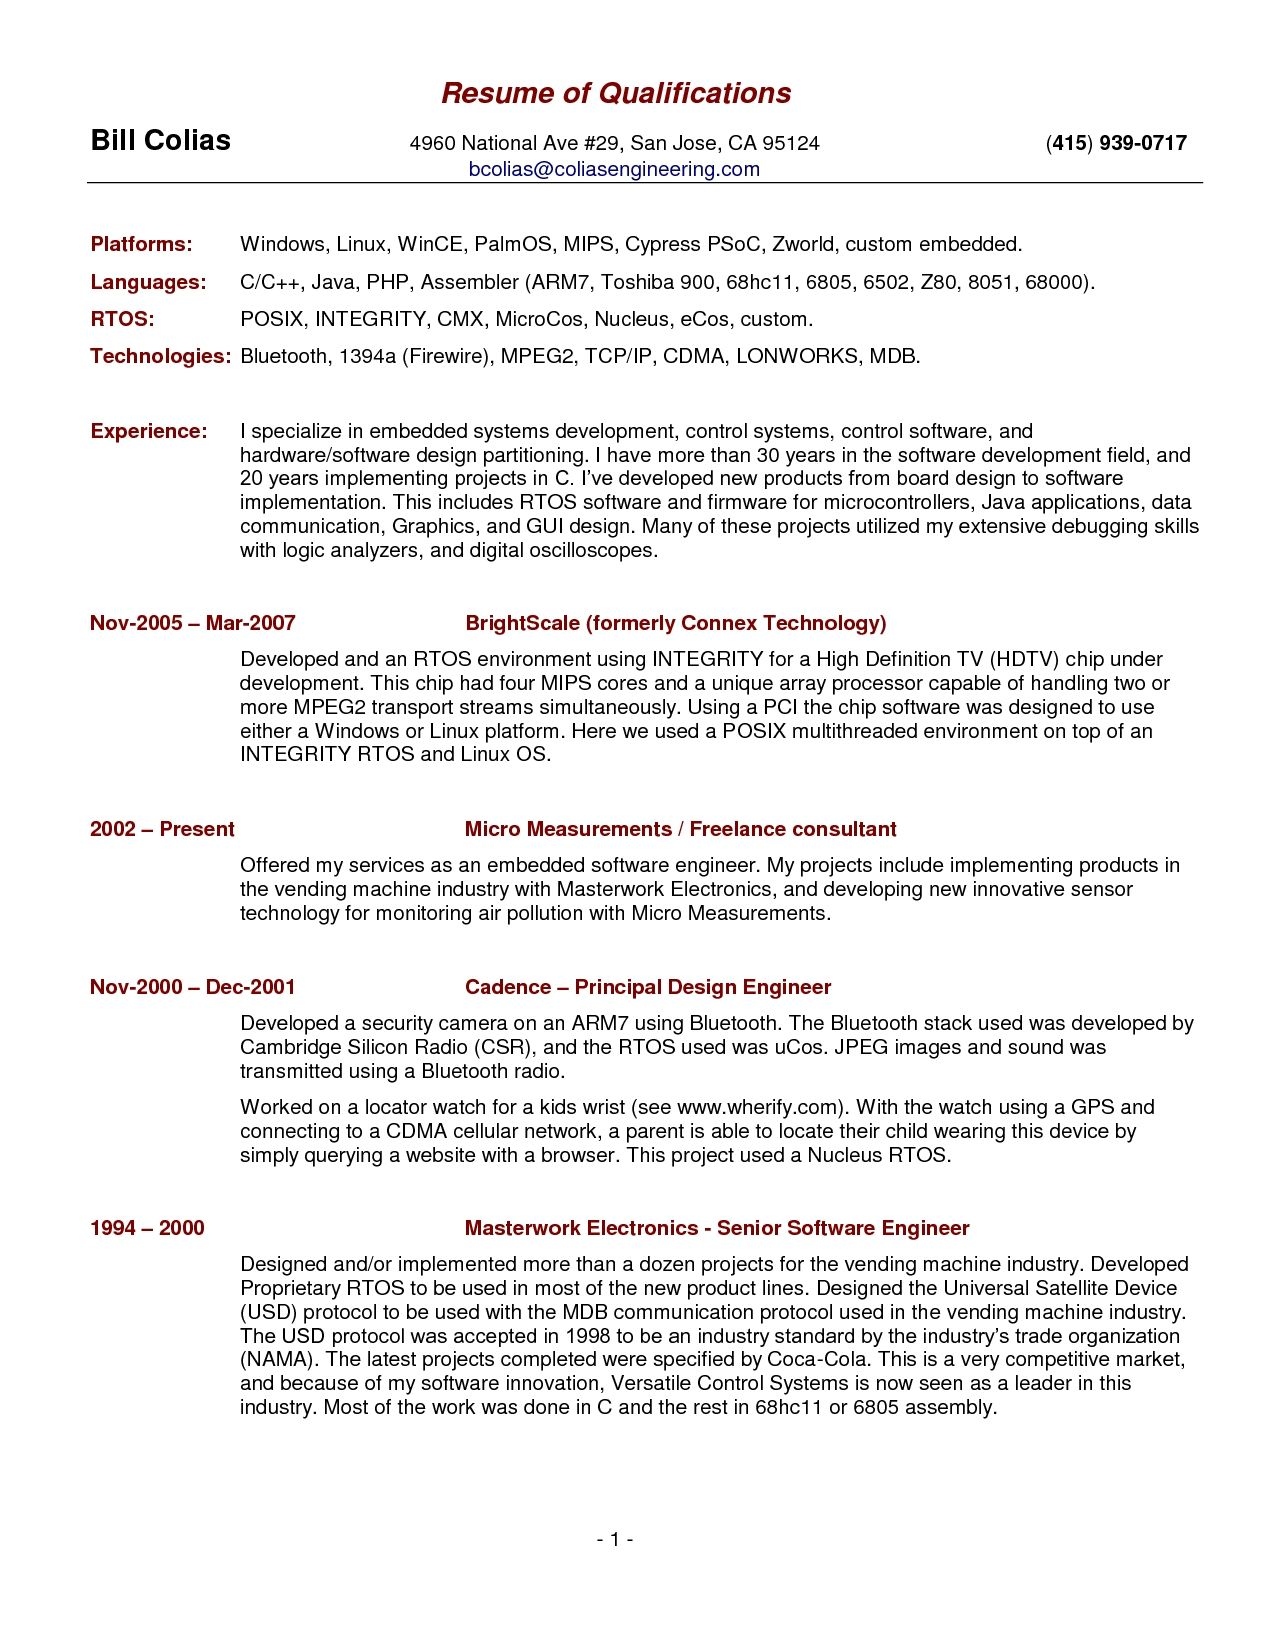 Skills And Abilities Resume Examples Free Resume Template Summary Qualifications  Free Resume Templates .